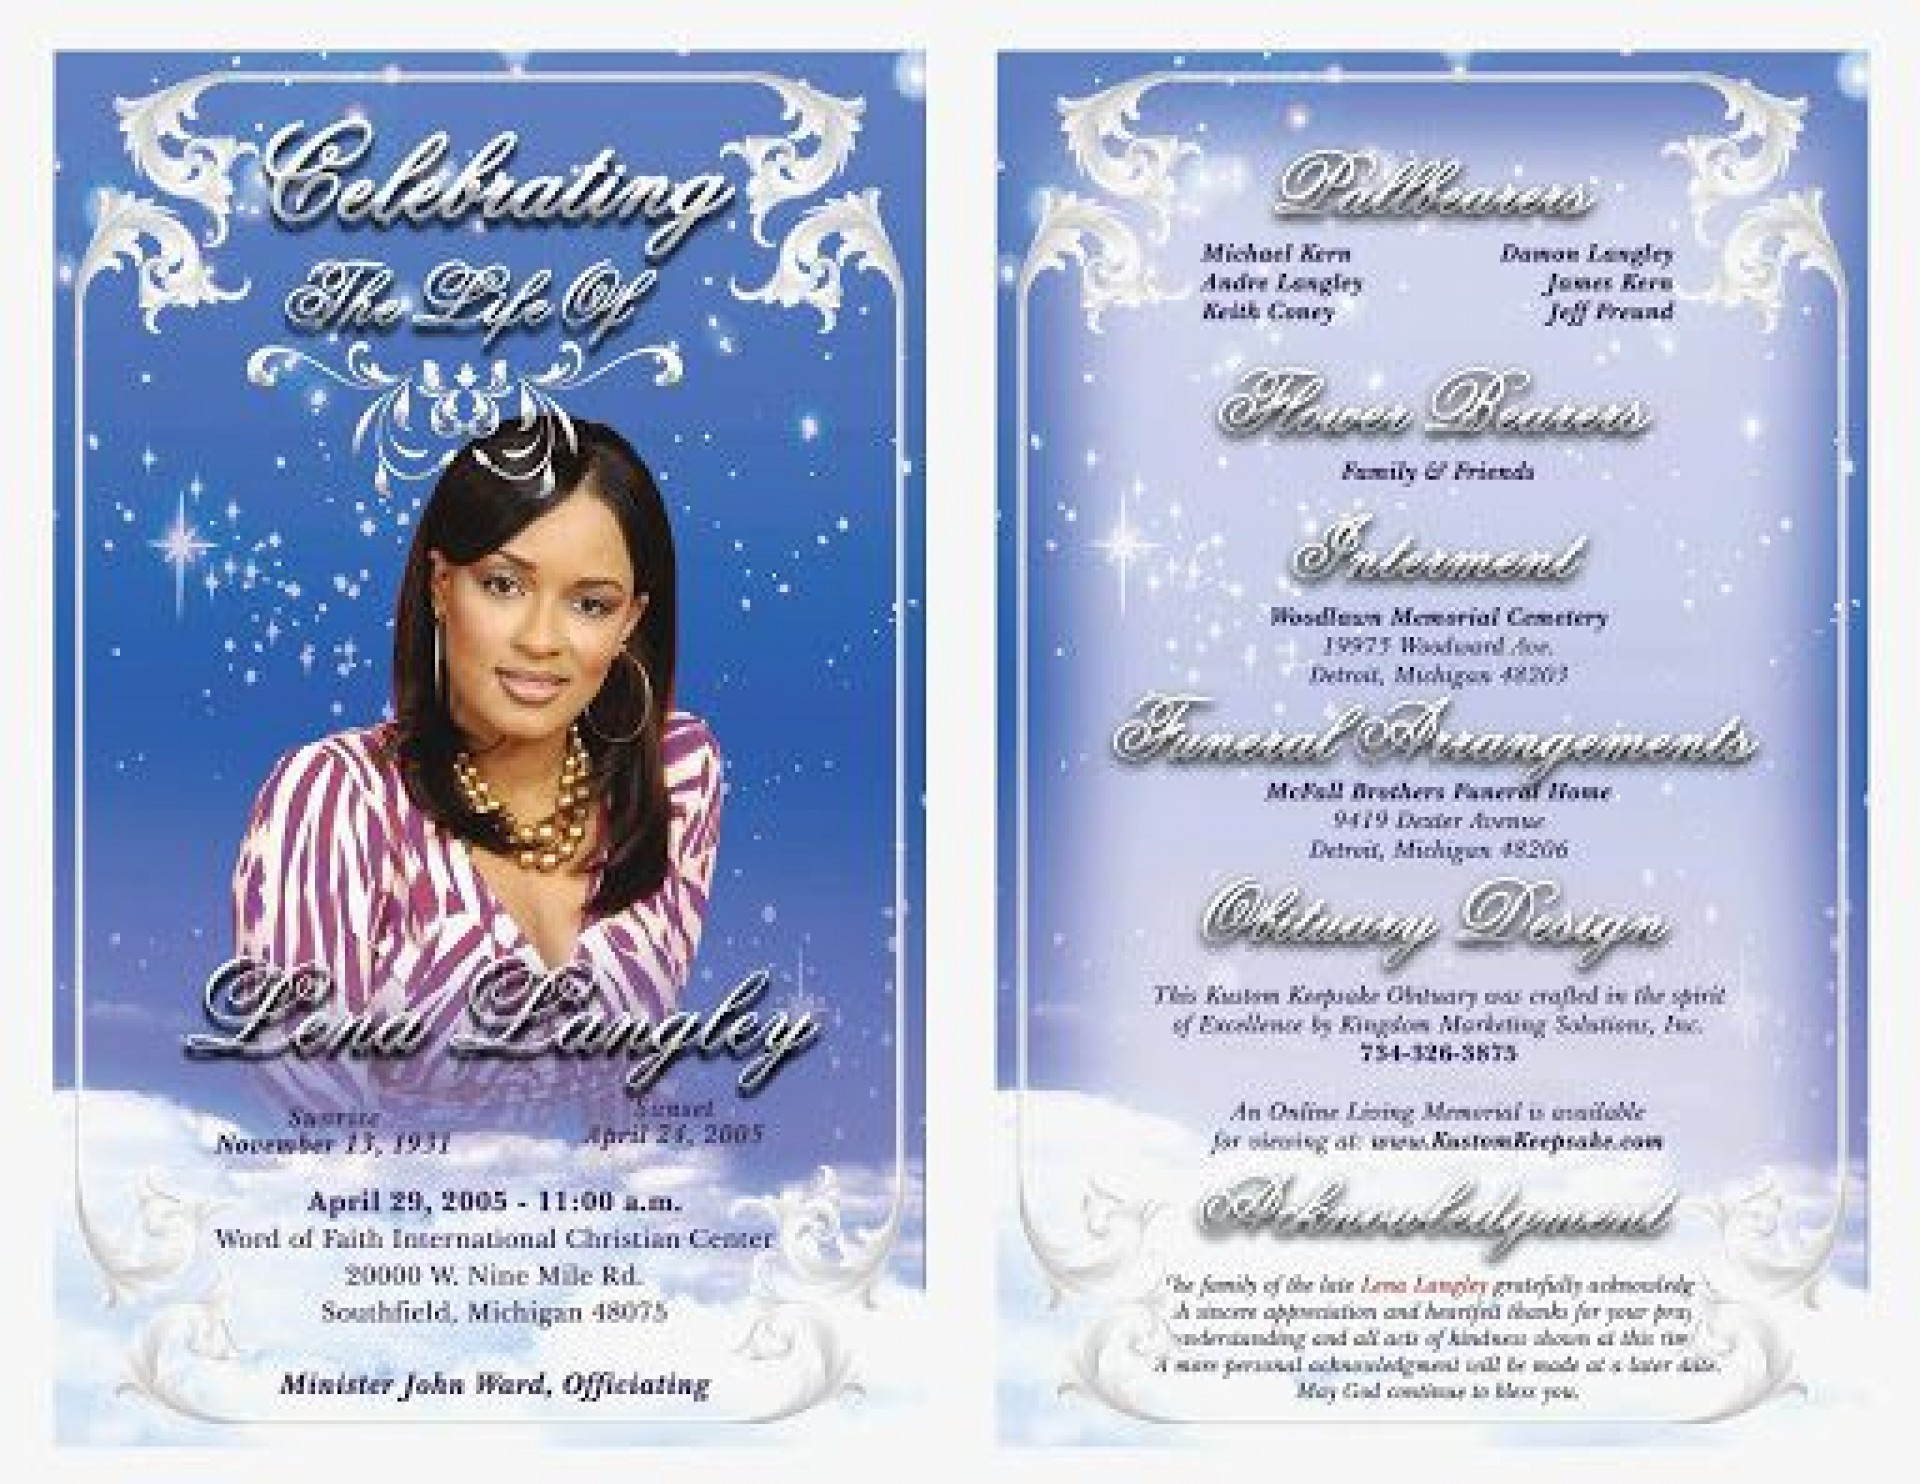 010 Unforgettable Celebration Of Life Program Template Free Highest Clarity  Editable Word1920